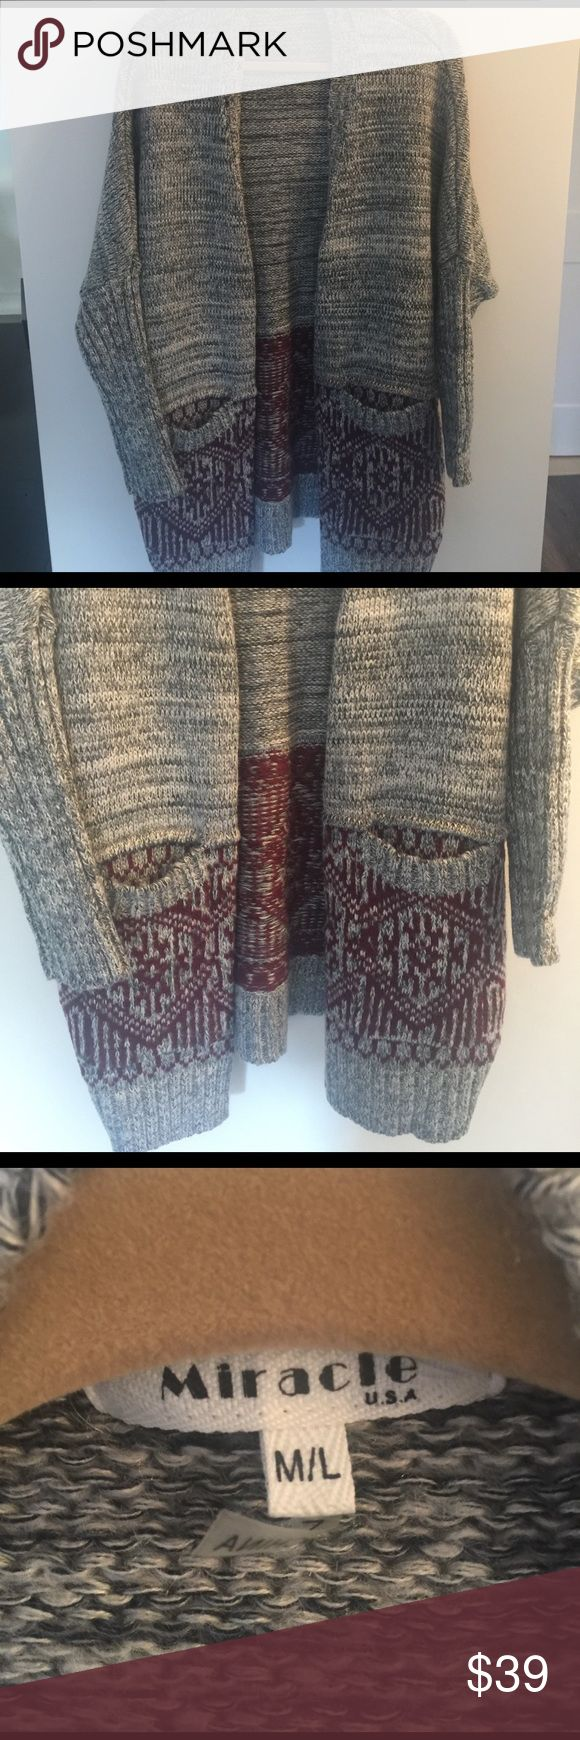 Miracle USA sz M/L gray sweater, aztec print Super cozy trendy black gray and white mixed blend long cardigan sweater with  Burgundy stitched in aztec like print perfect for ski weather over some leggings or skinny jeans or just to put on top of the pajamas and lounge around MIRACLE USA Sweaters Cardigans